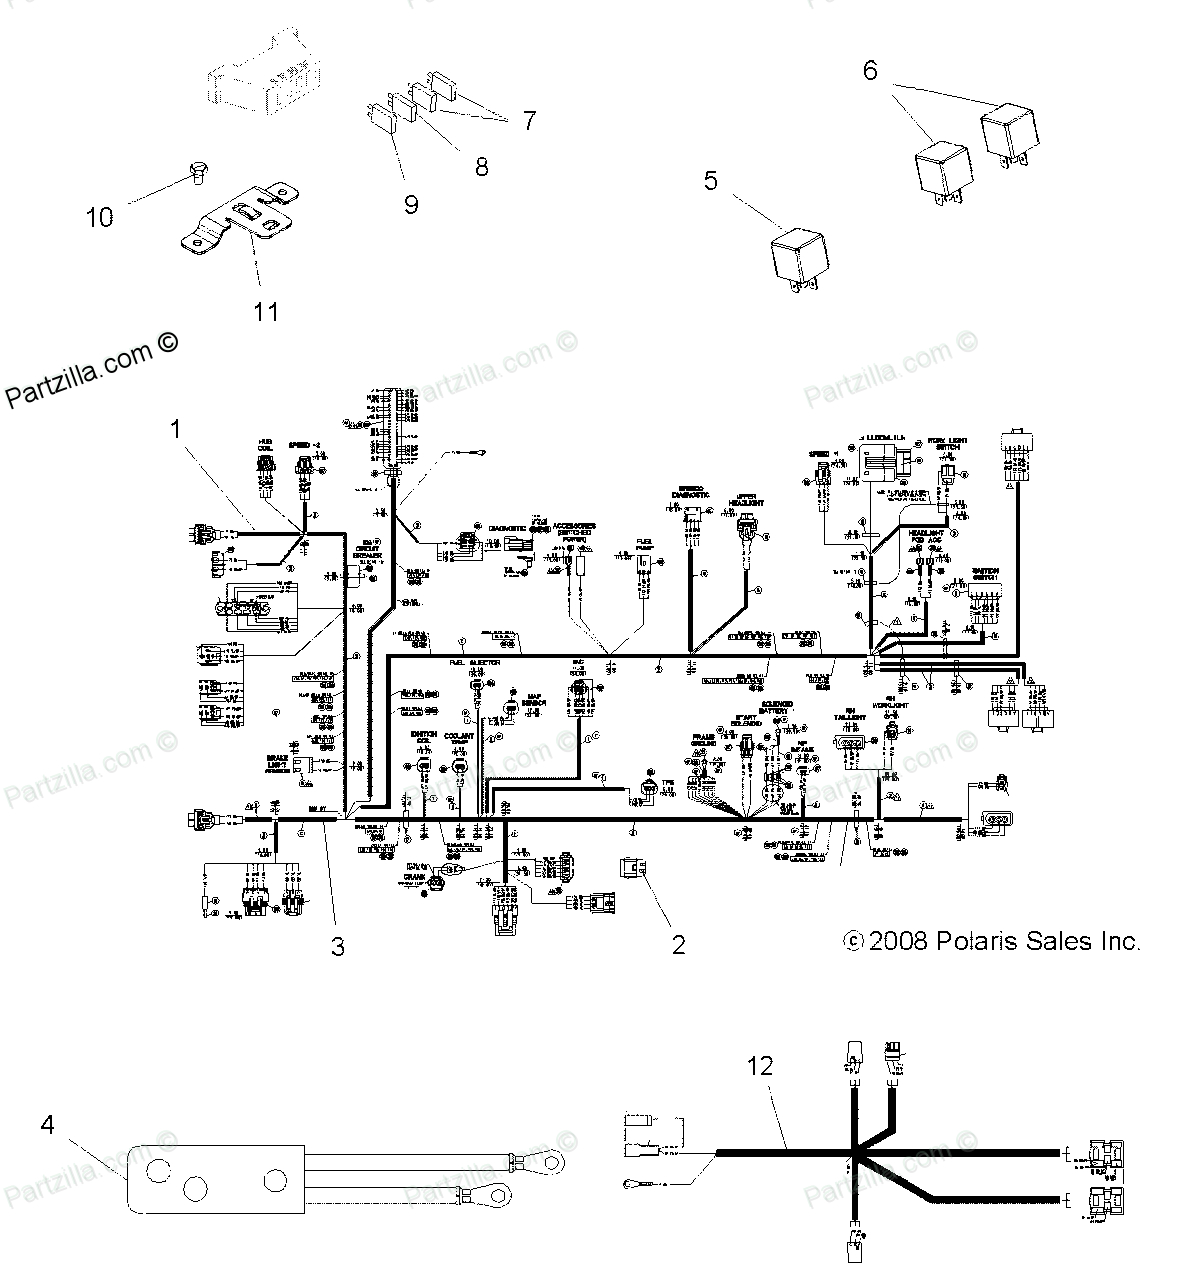 2004 Polaris Sportsman 400 Wiring Diagram Sample Genesis House 600 Parts Elegant Awesome